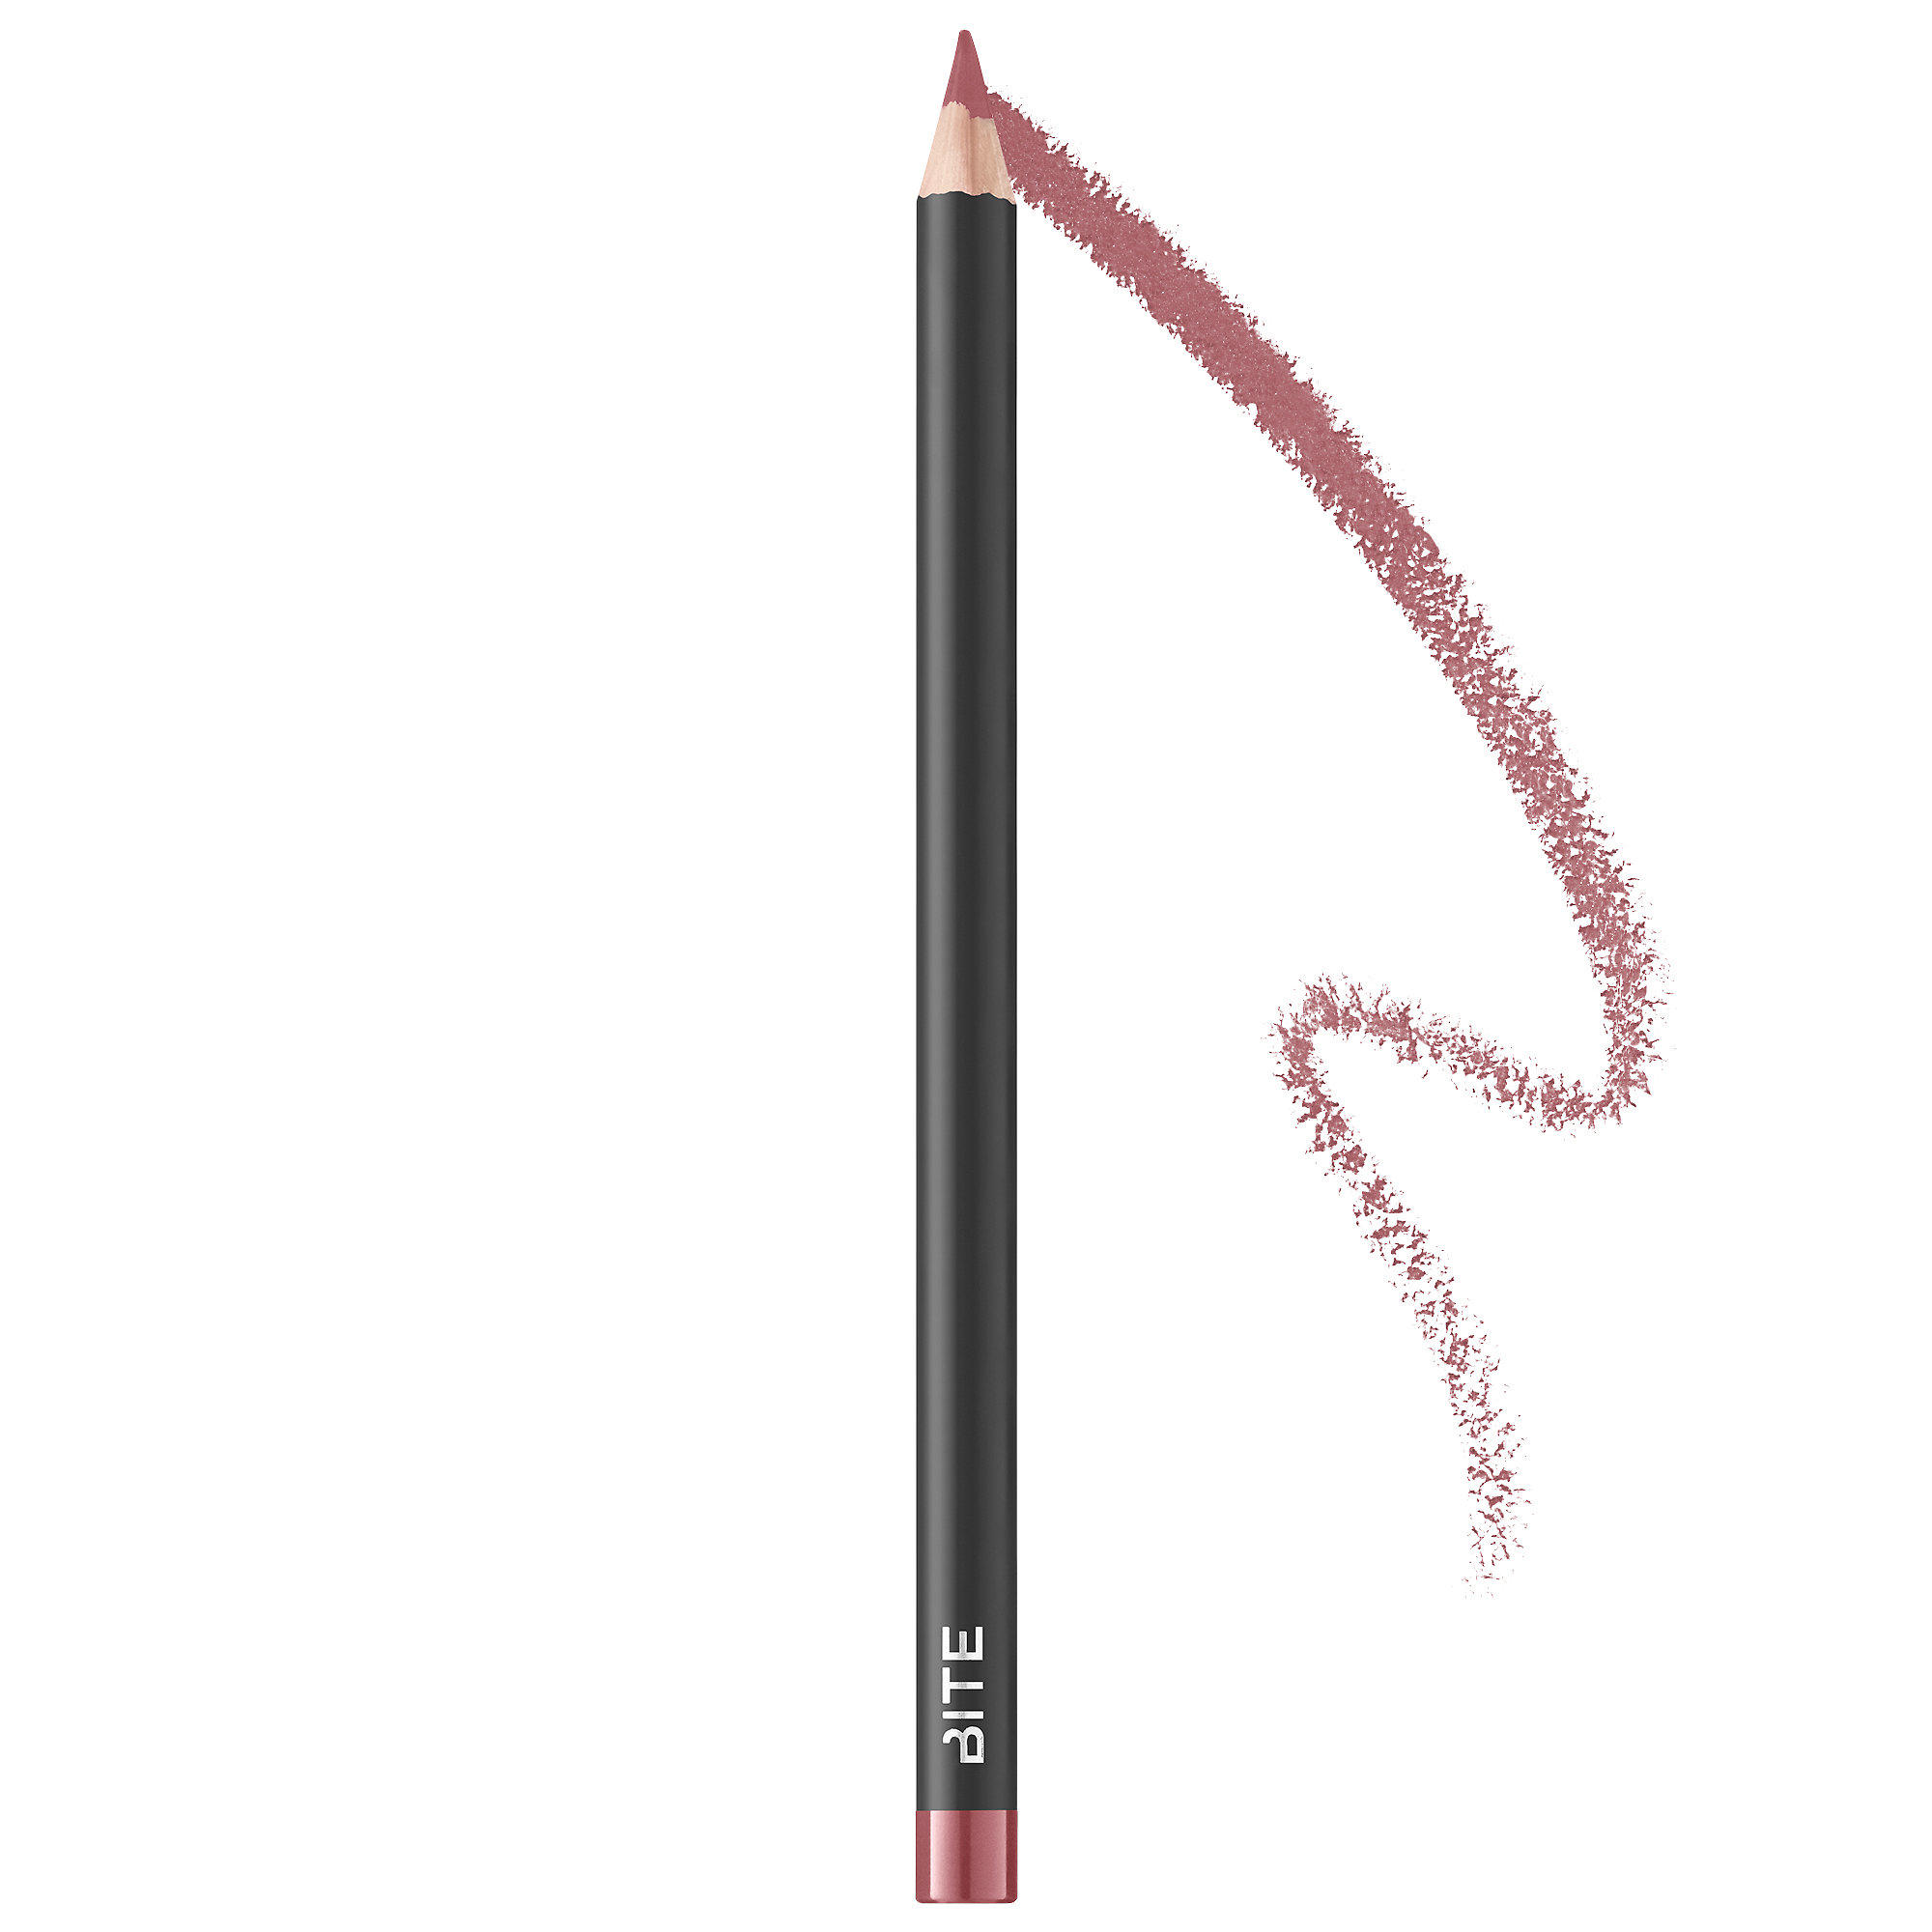 Bite Beauty The Lip Pencil Pale Pink 006